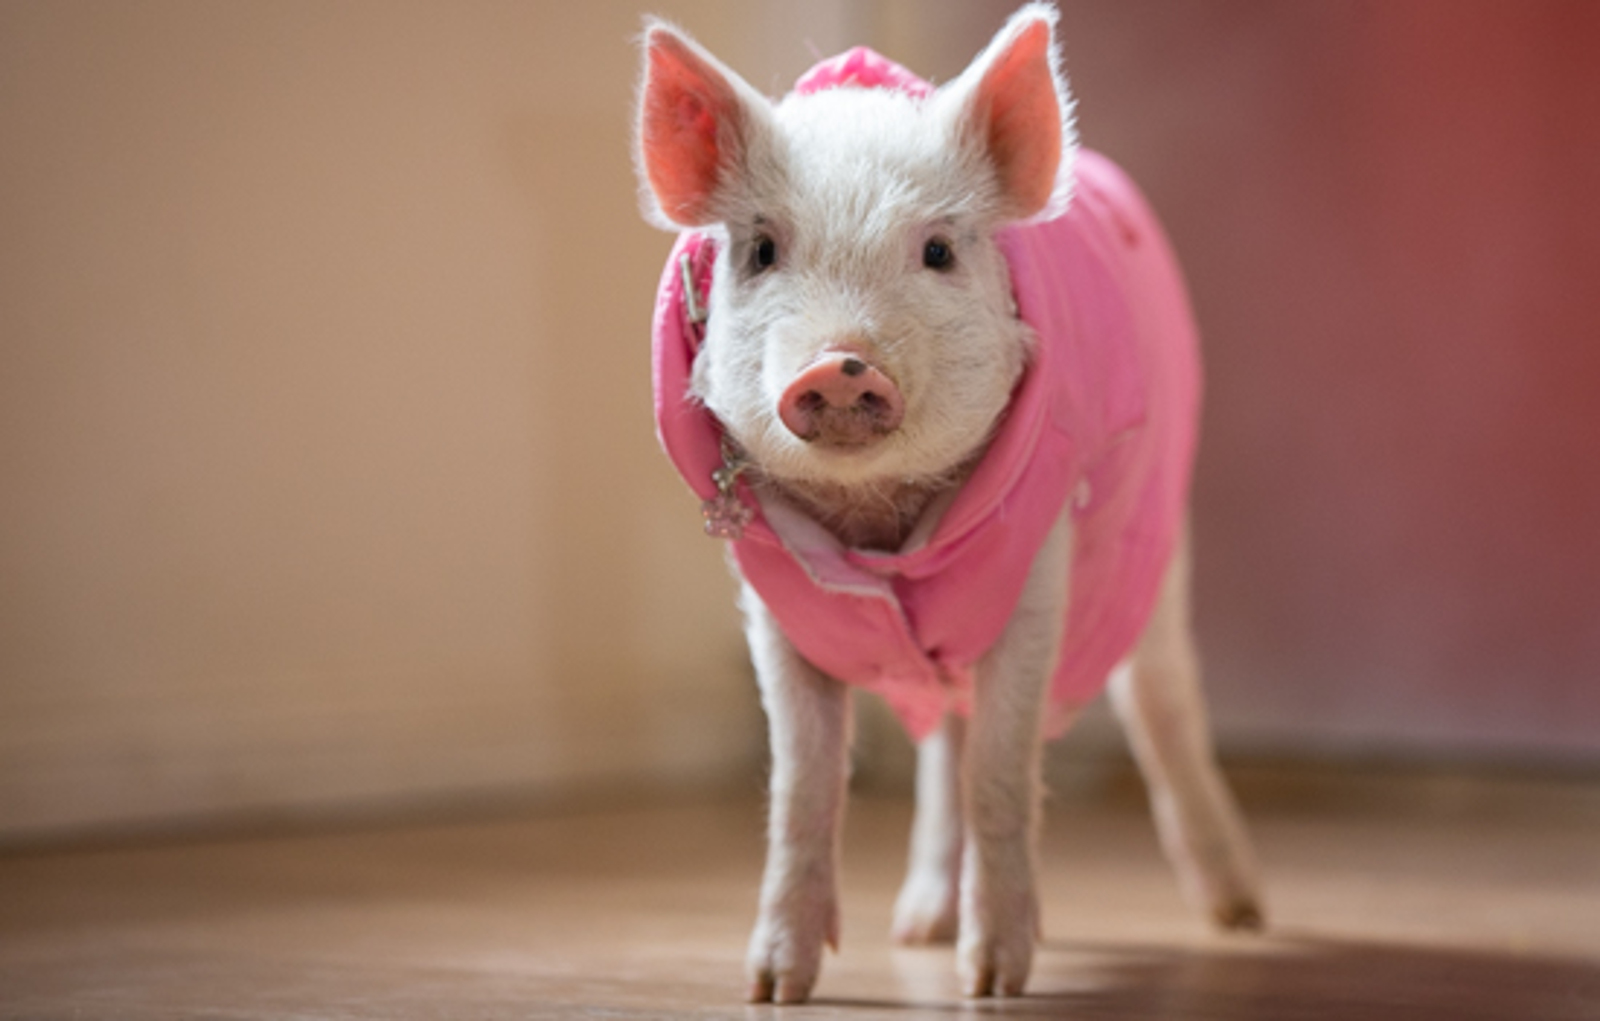 Rescued From Life as a 'Teacup' Pig, Lil Squeak Has a Blast in Her New Sanctuary Home